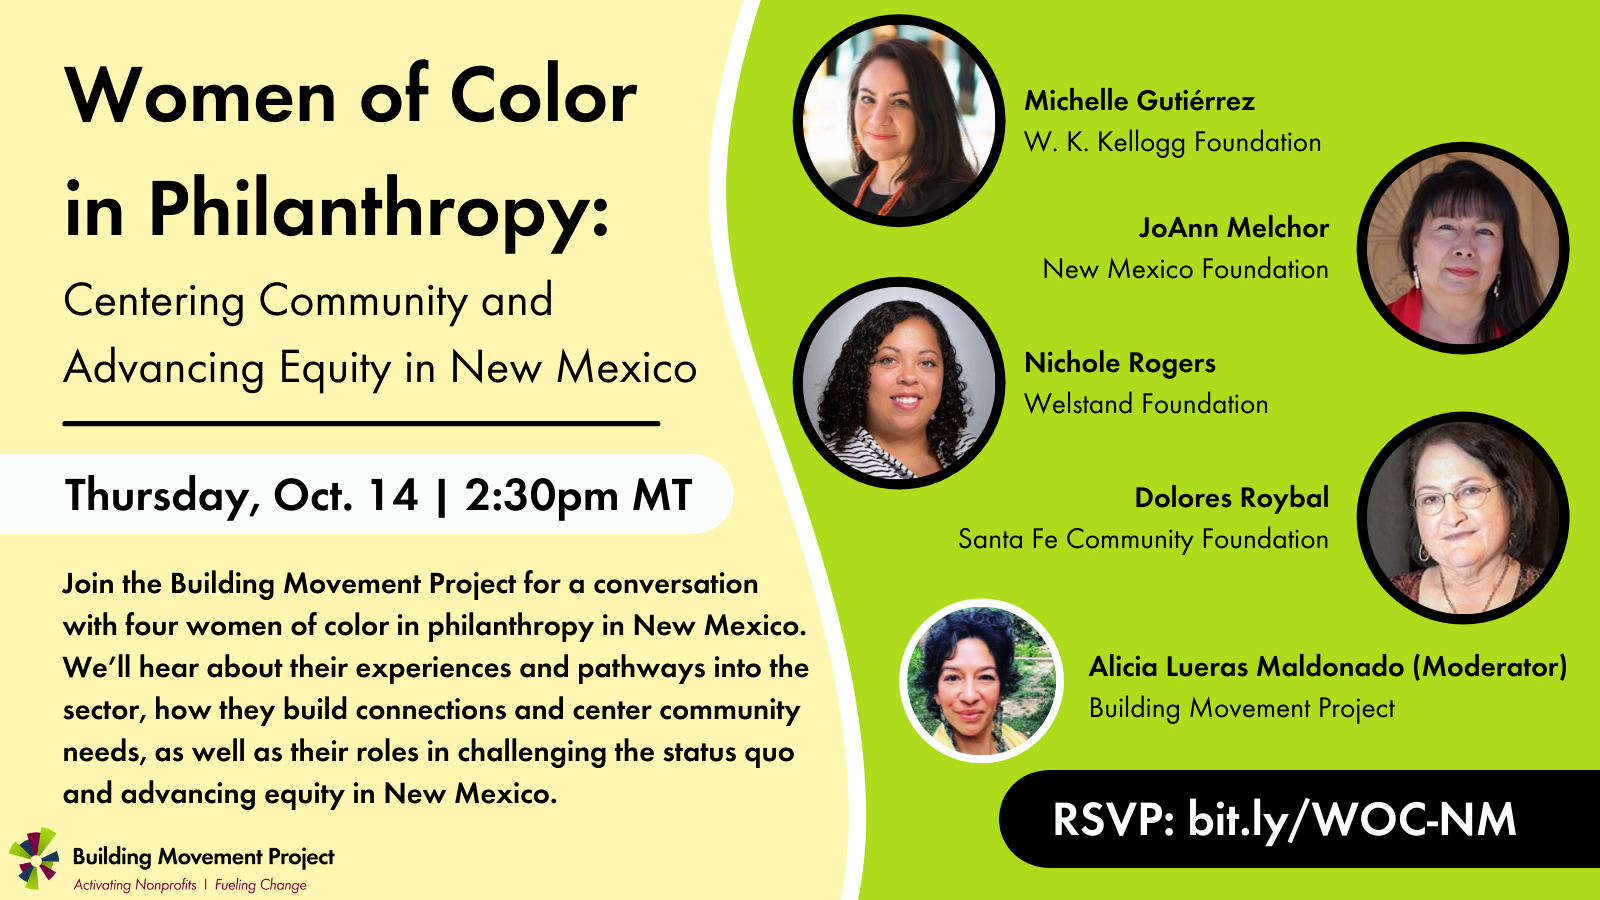 Women of Color in Philanthropy: Centering Community and Advancing Equity in New Mexico